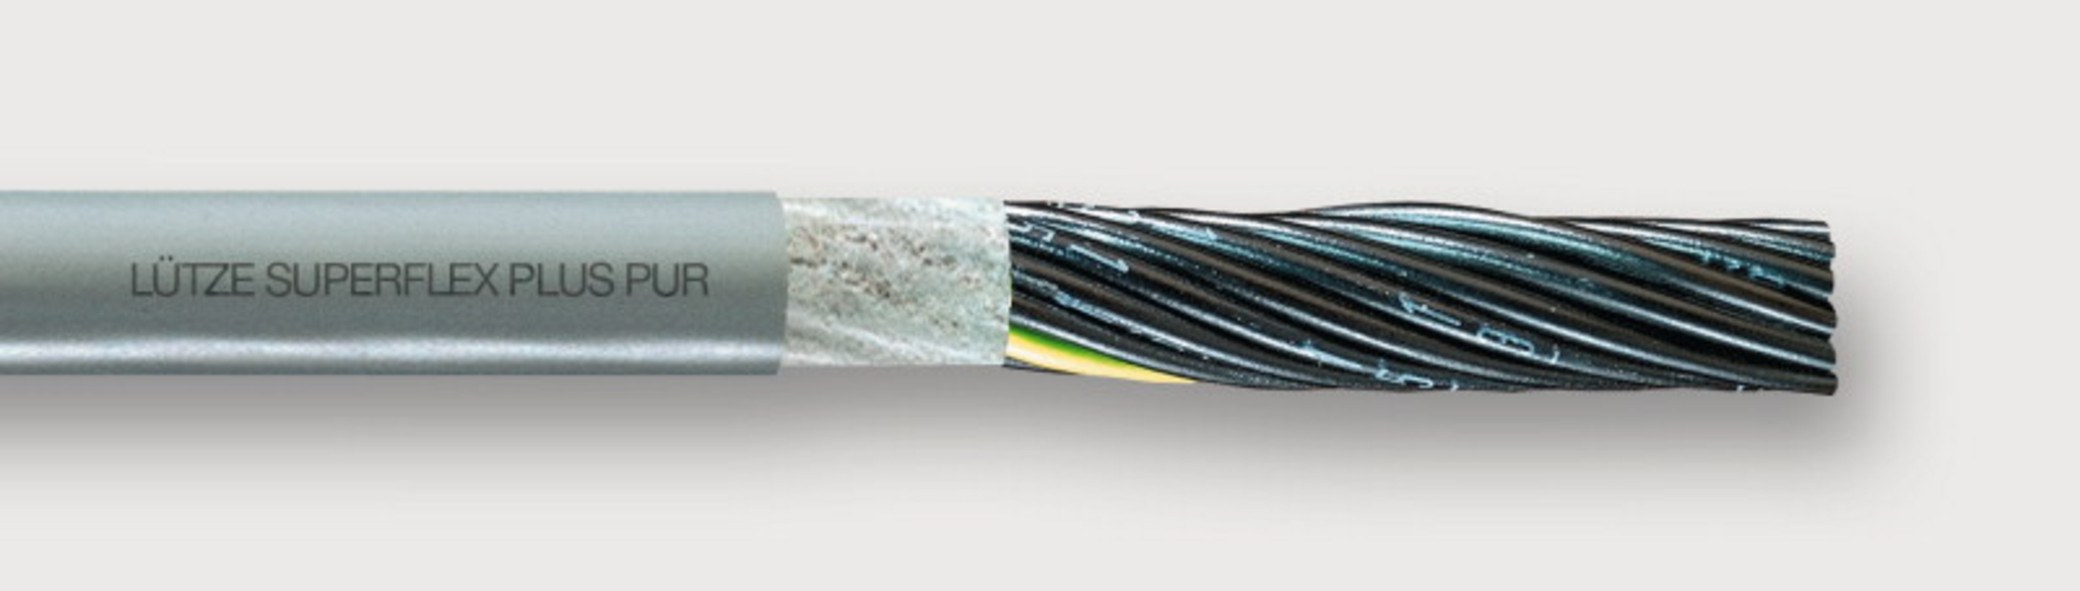 113402 Ltze Superflex Plus N Pur 300 V For Highest Requirements Heat Resistant Wiring Insulation